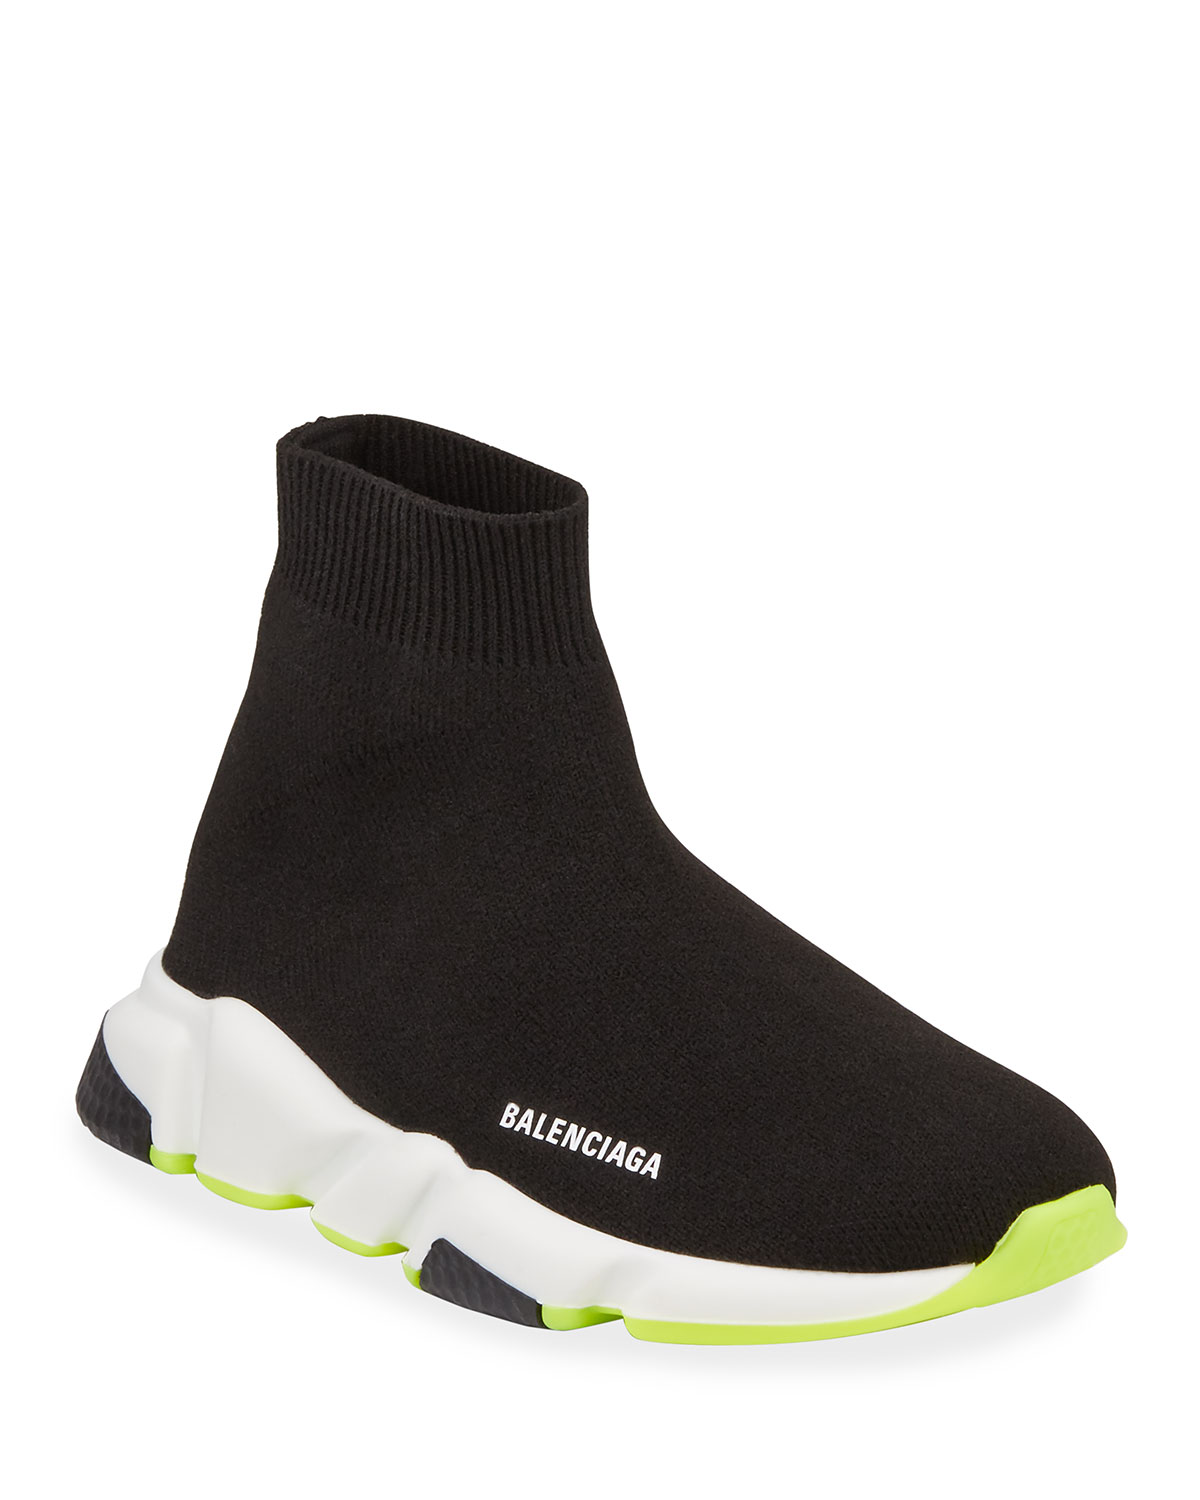 f026893687b225 Balenciaga Speed Mid-Top Trainer Sock Sneakers, Toddler/Kids ...